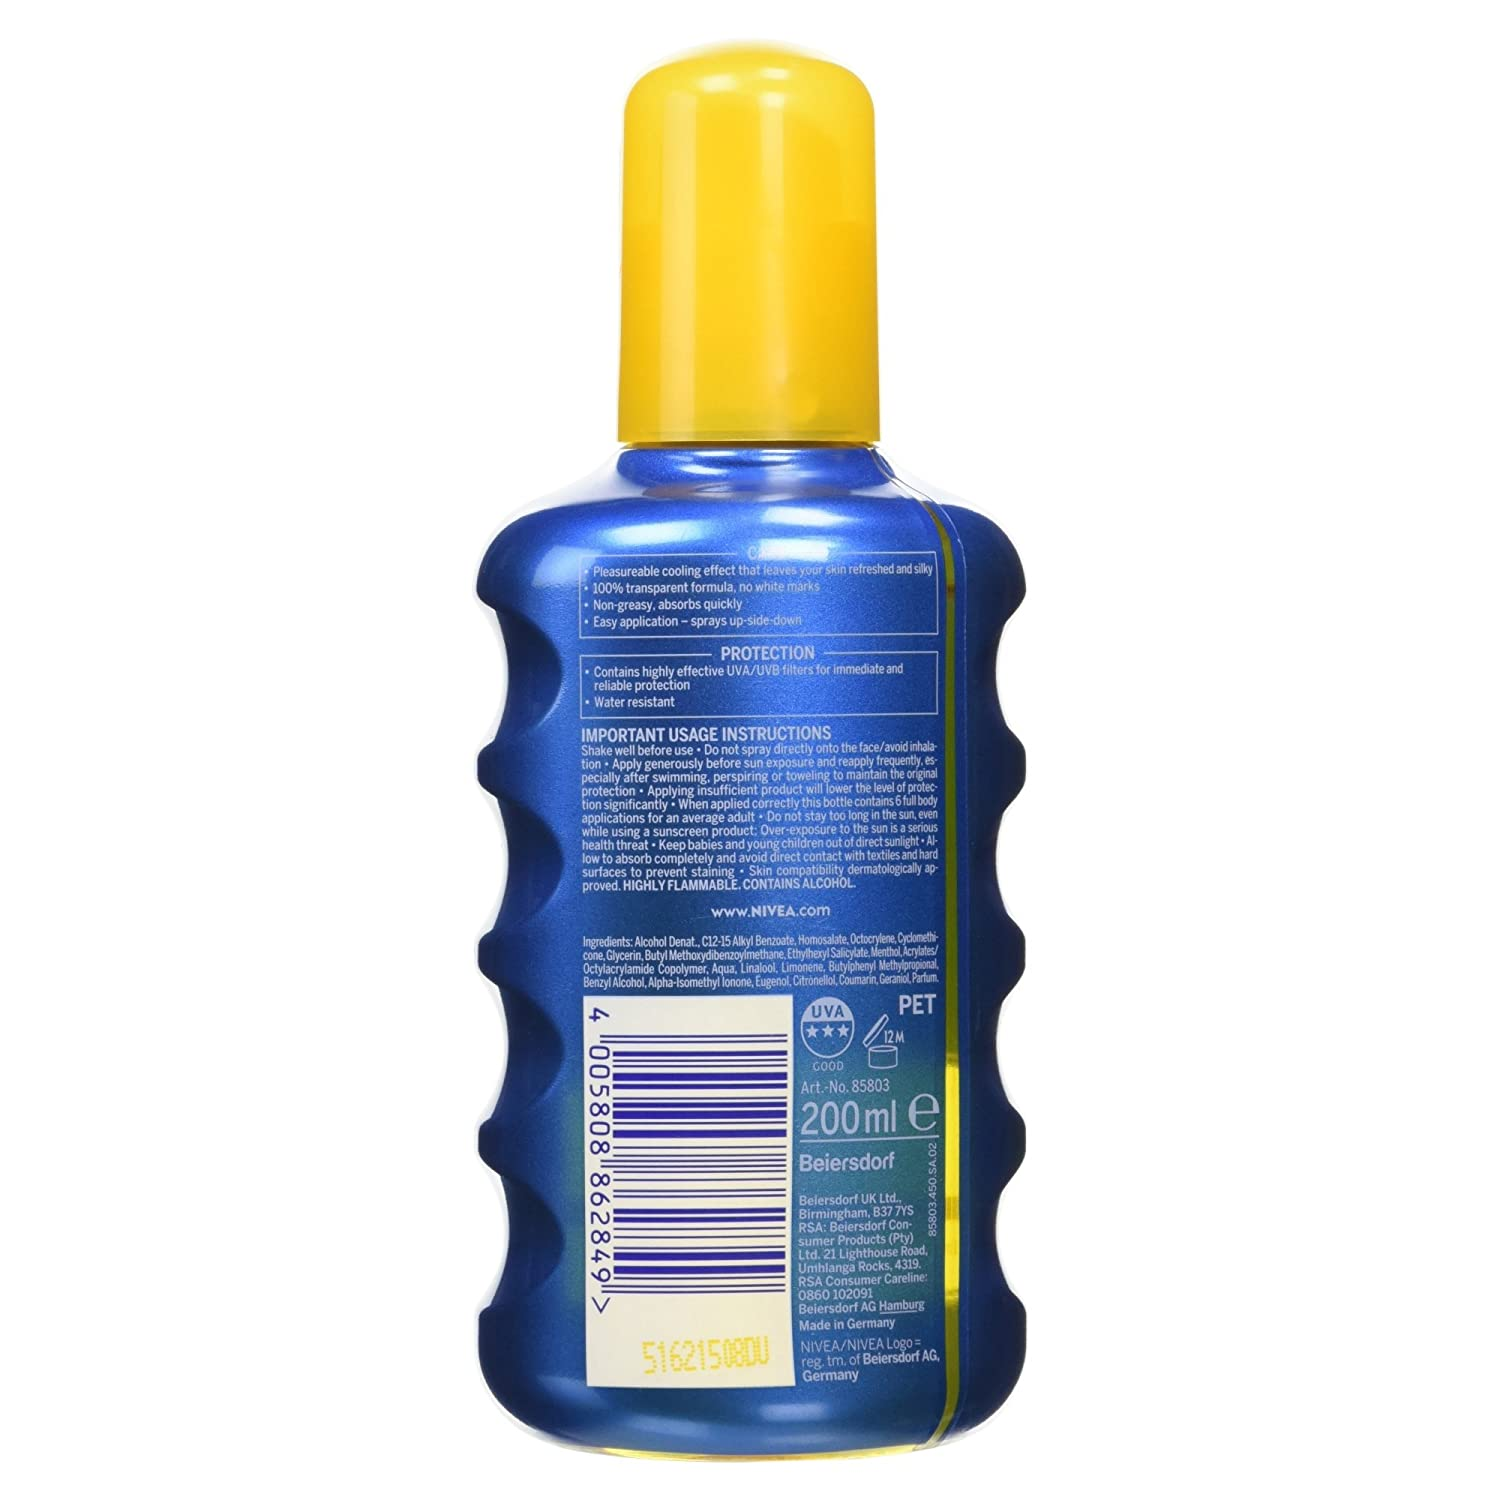 Nivea Sun SPF Protección Invisible 30 Sun Loción transparente Spray - 200ml: Amazon.es: Belleza